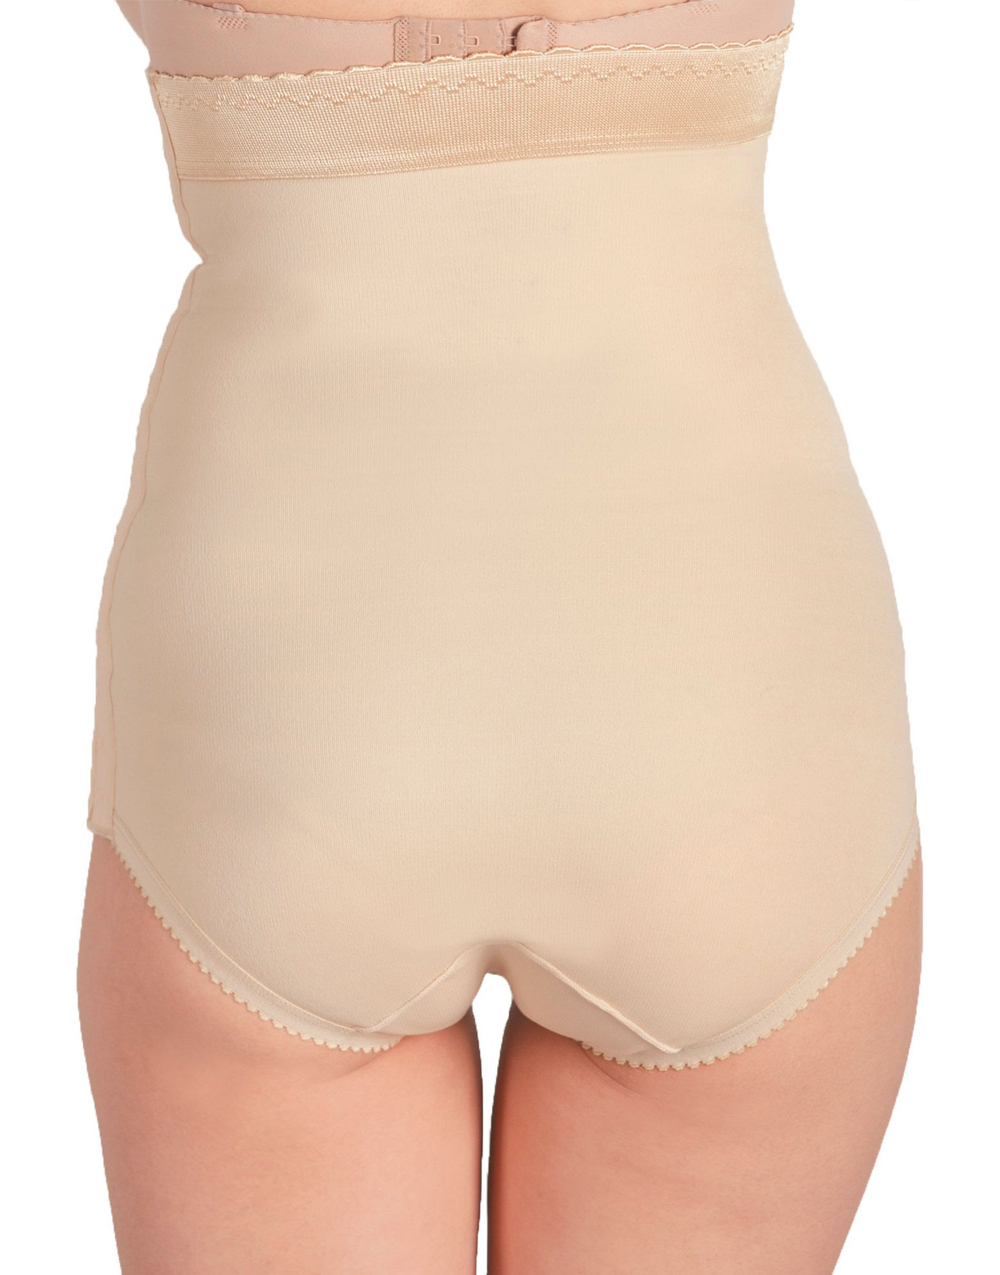 Postpartum Ultra Bikini in Nude by Wink Shapewear | 2XL